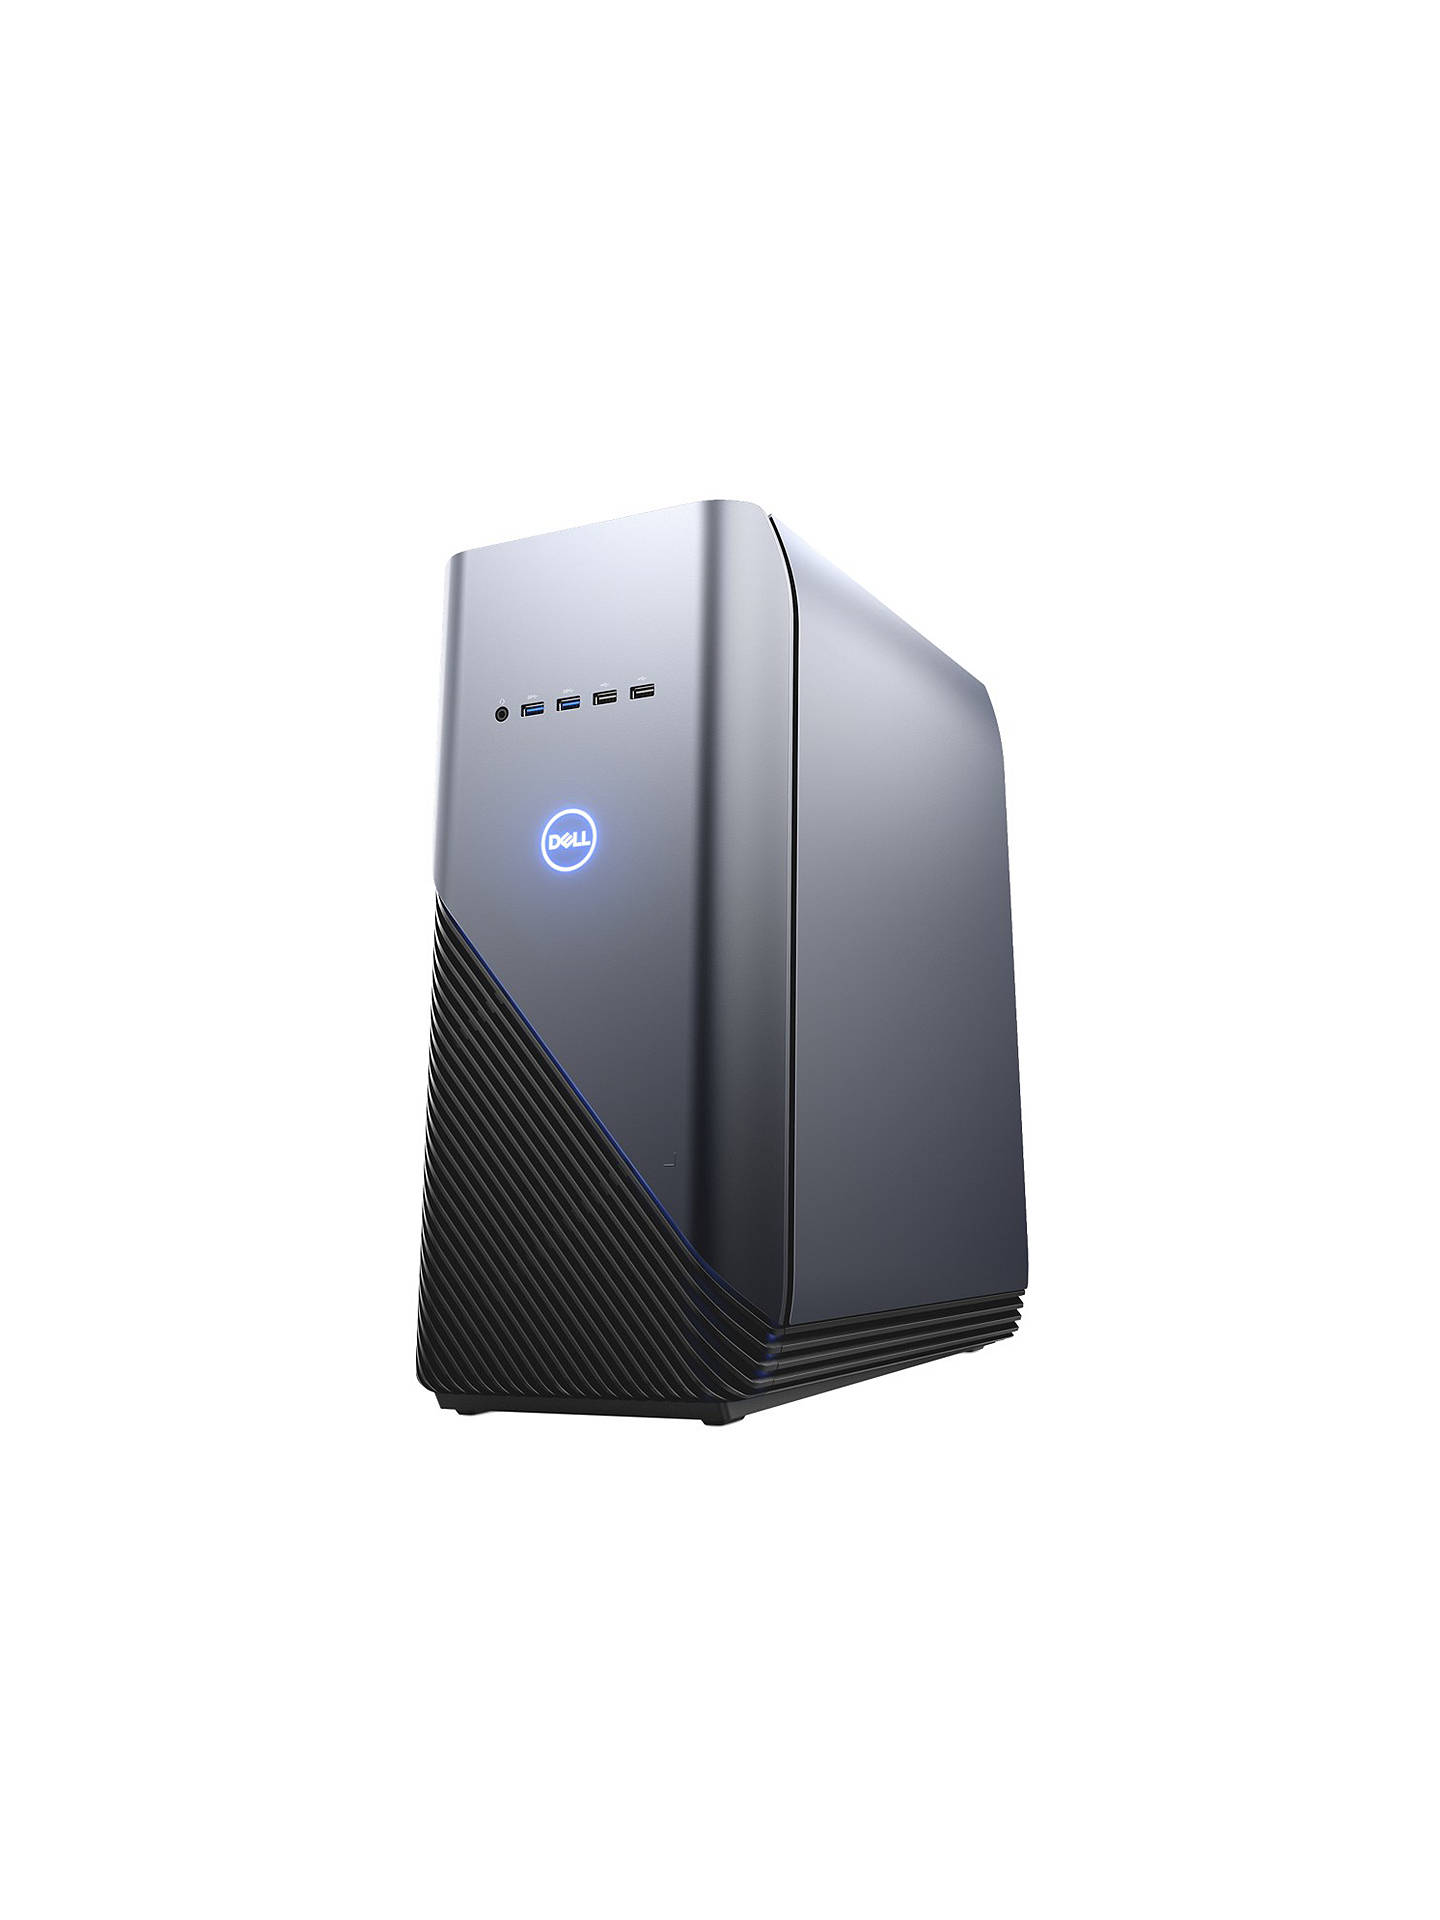 BuyDell Inspiron 5680 Tower PC, Intel Core i7, 8GB, 1TB HDD + 128GB SSD, NVIDIA GTX 1060, Recon Blue Online at johnlewis.com